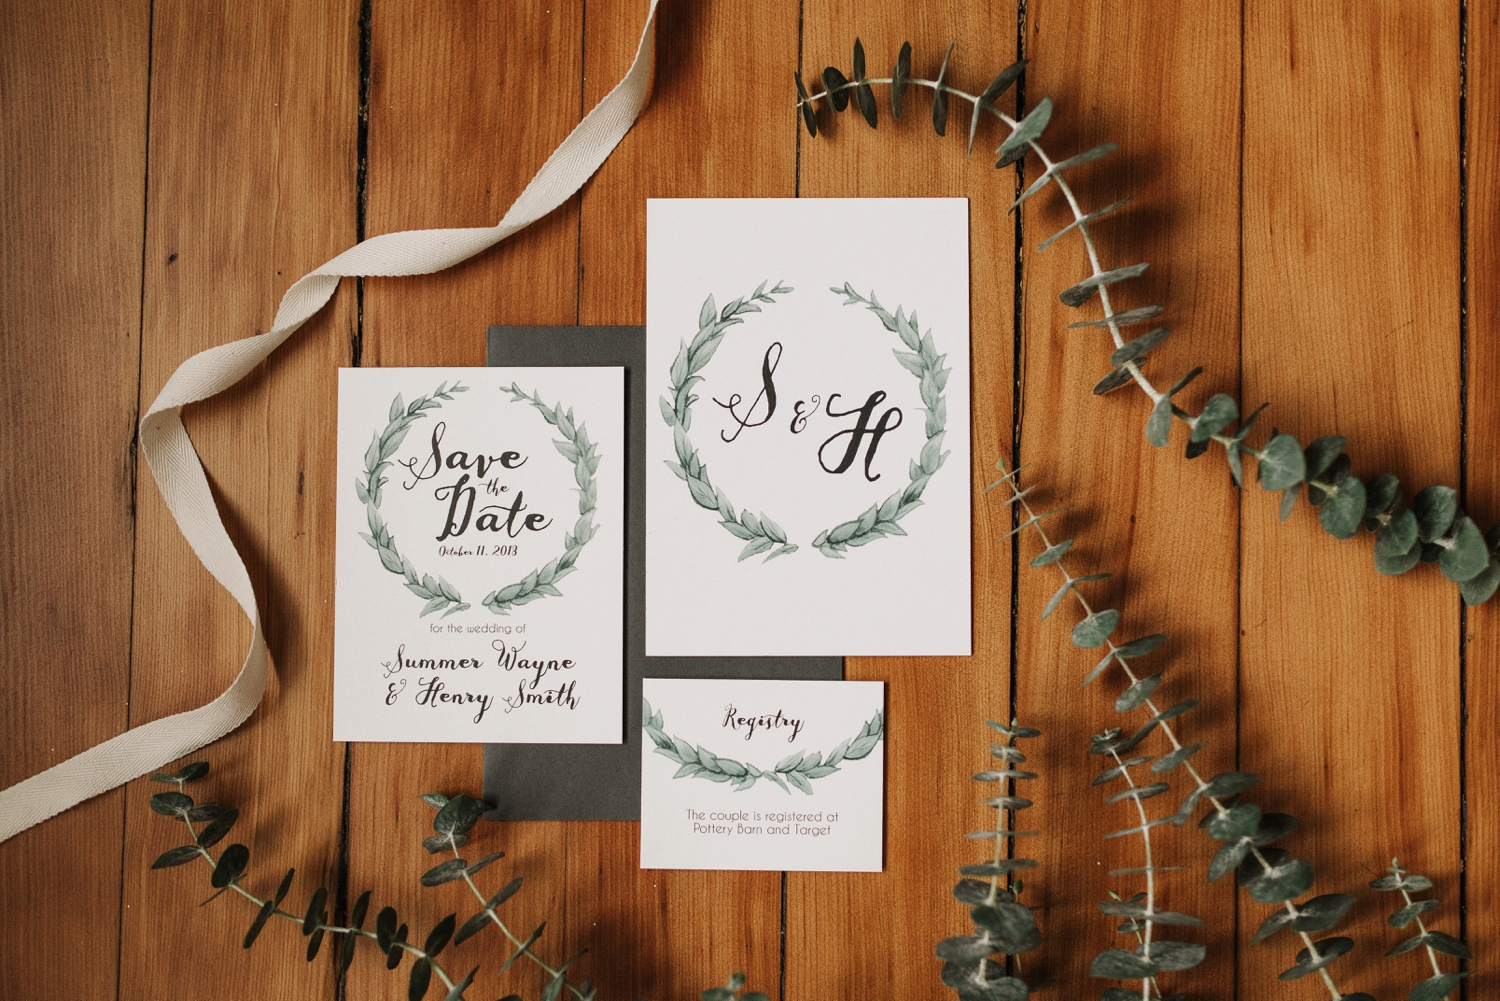 Basic-Invite-Cards-Wedding-Photo-03.JPG